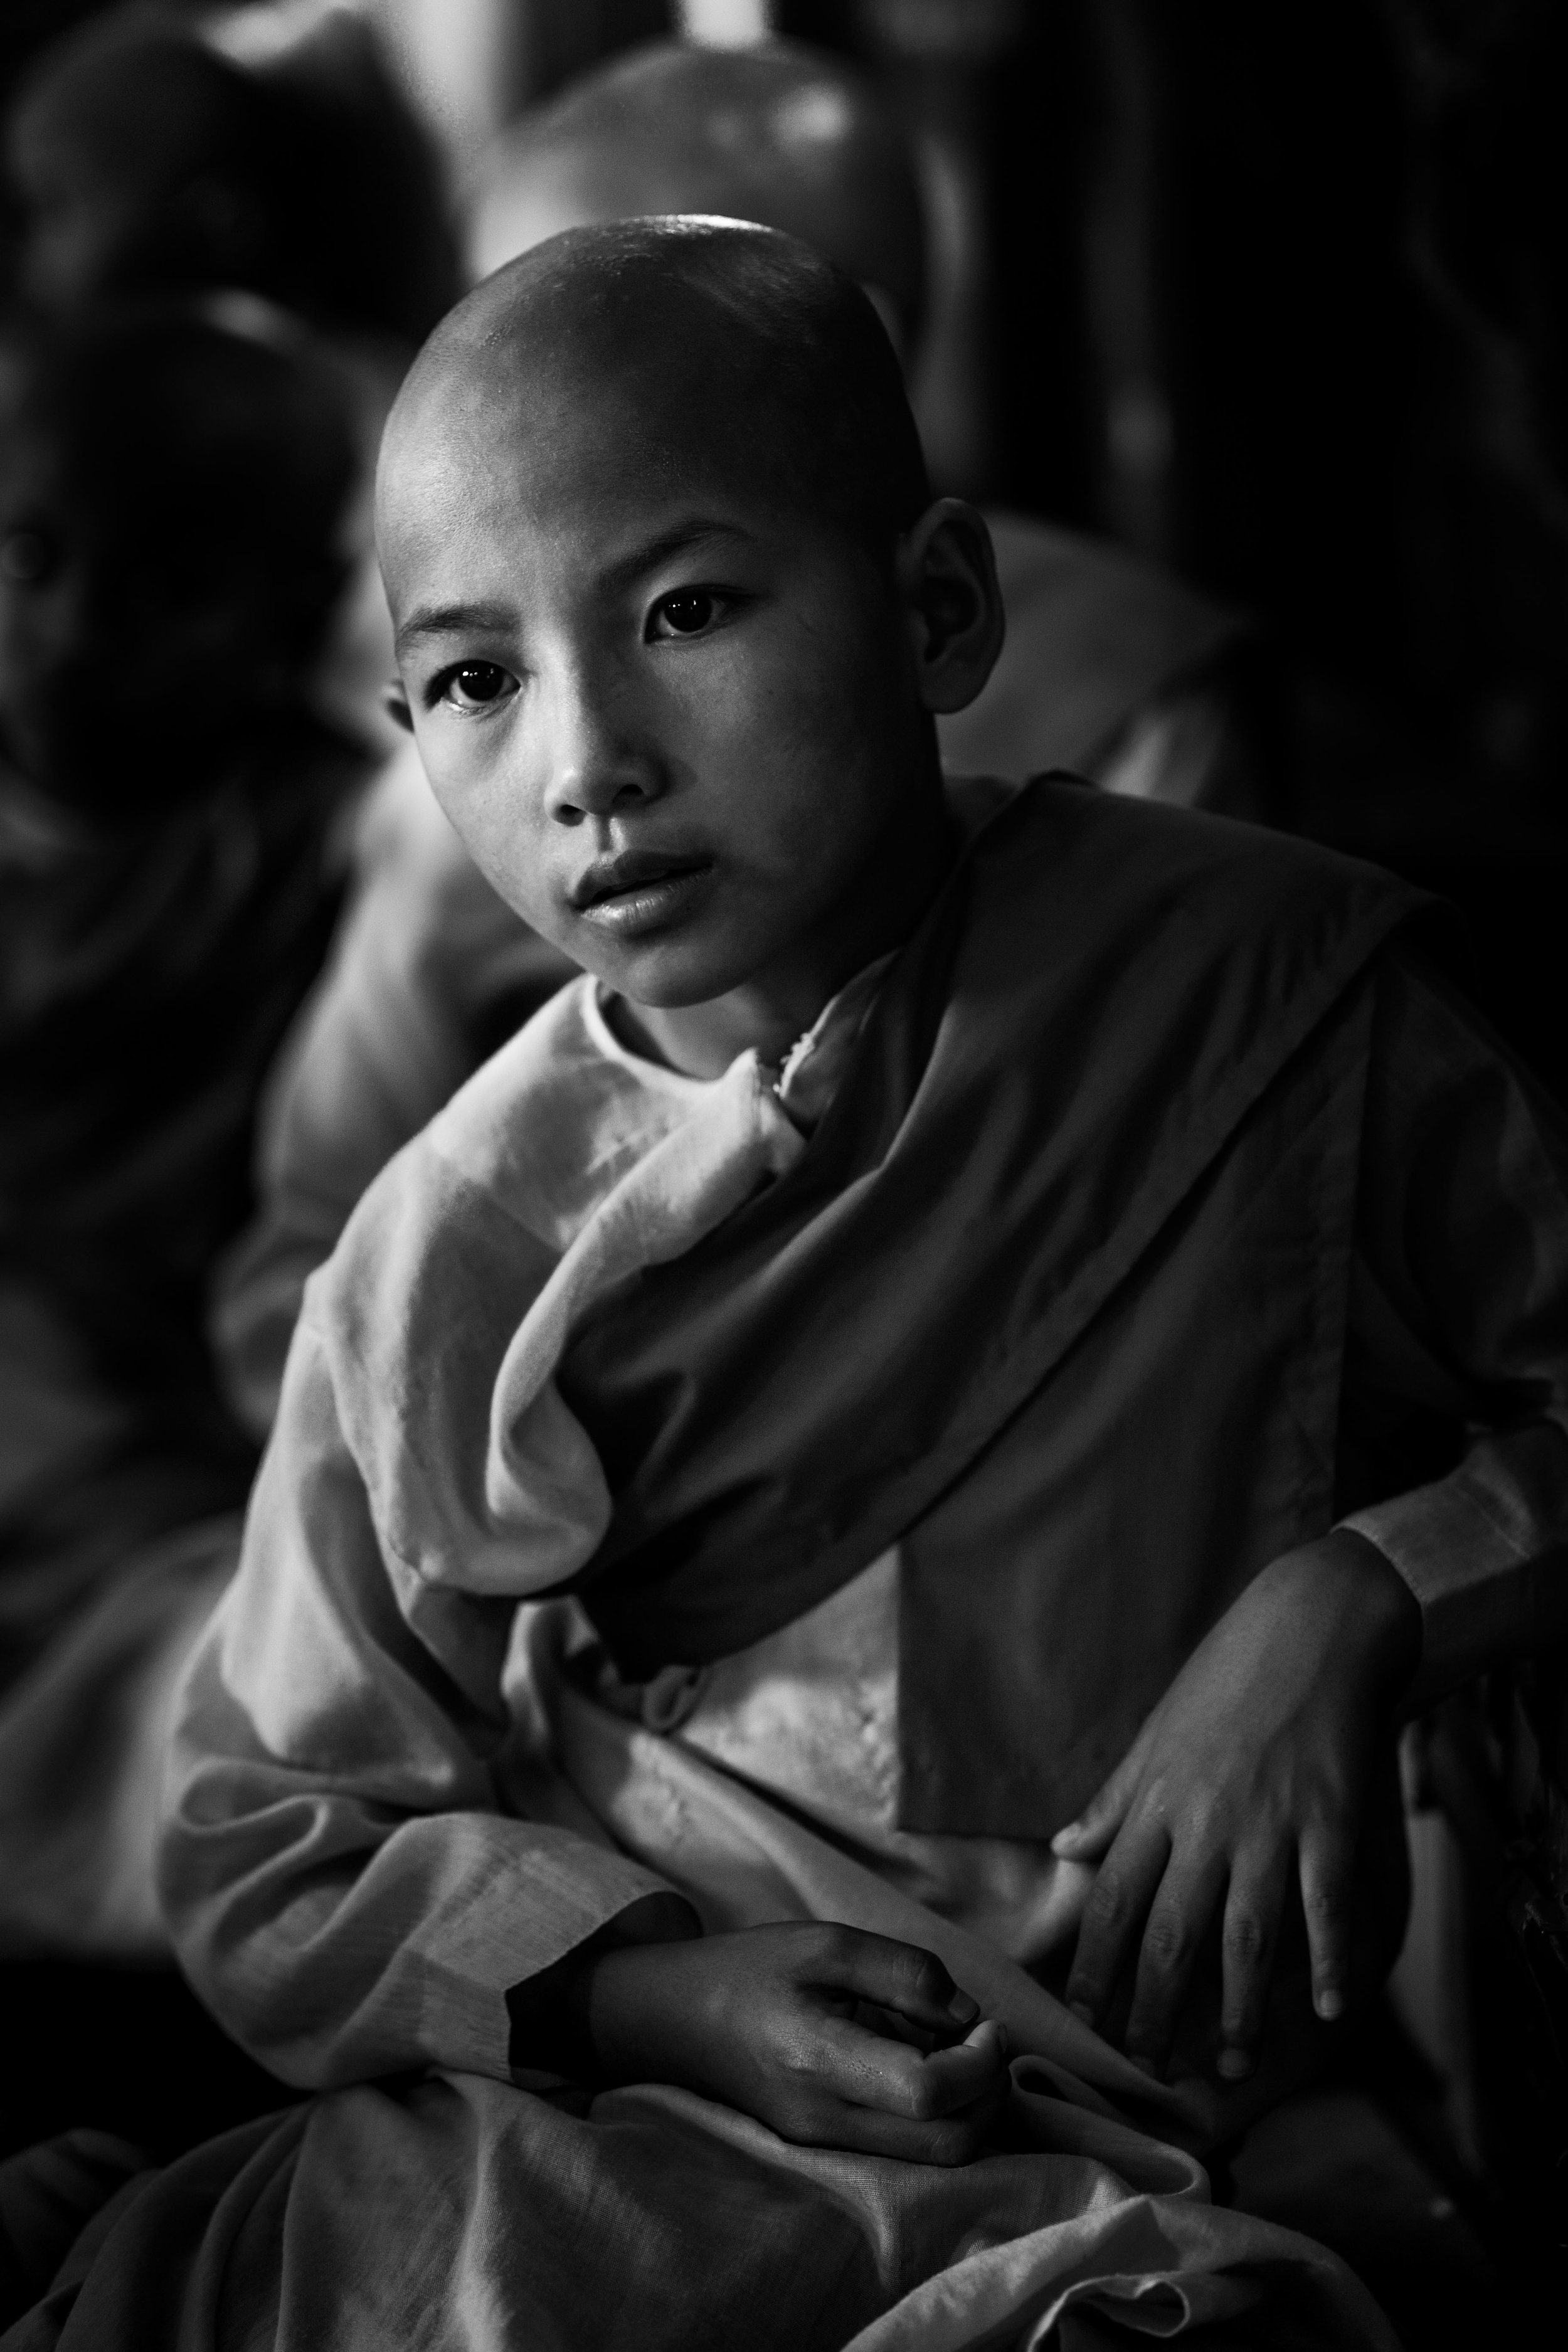 Novice nun sits during an Assembly from the series Portraits of Myanmar.